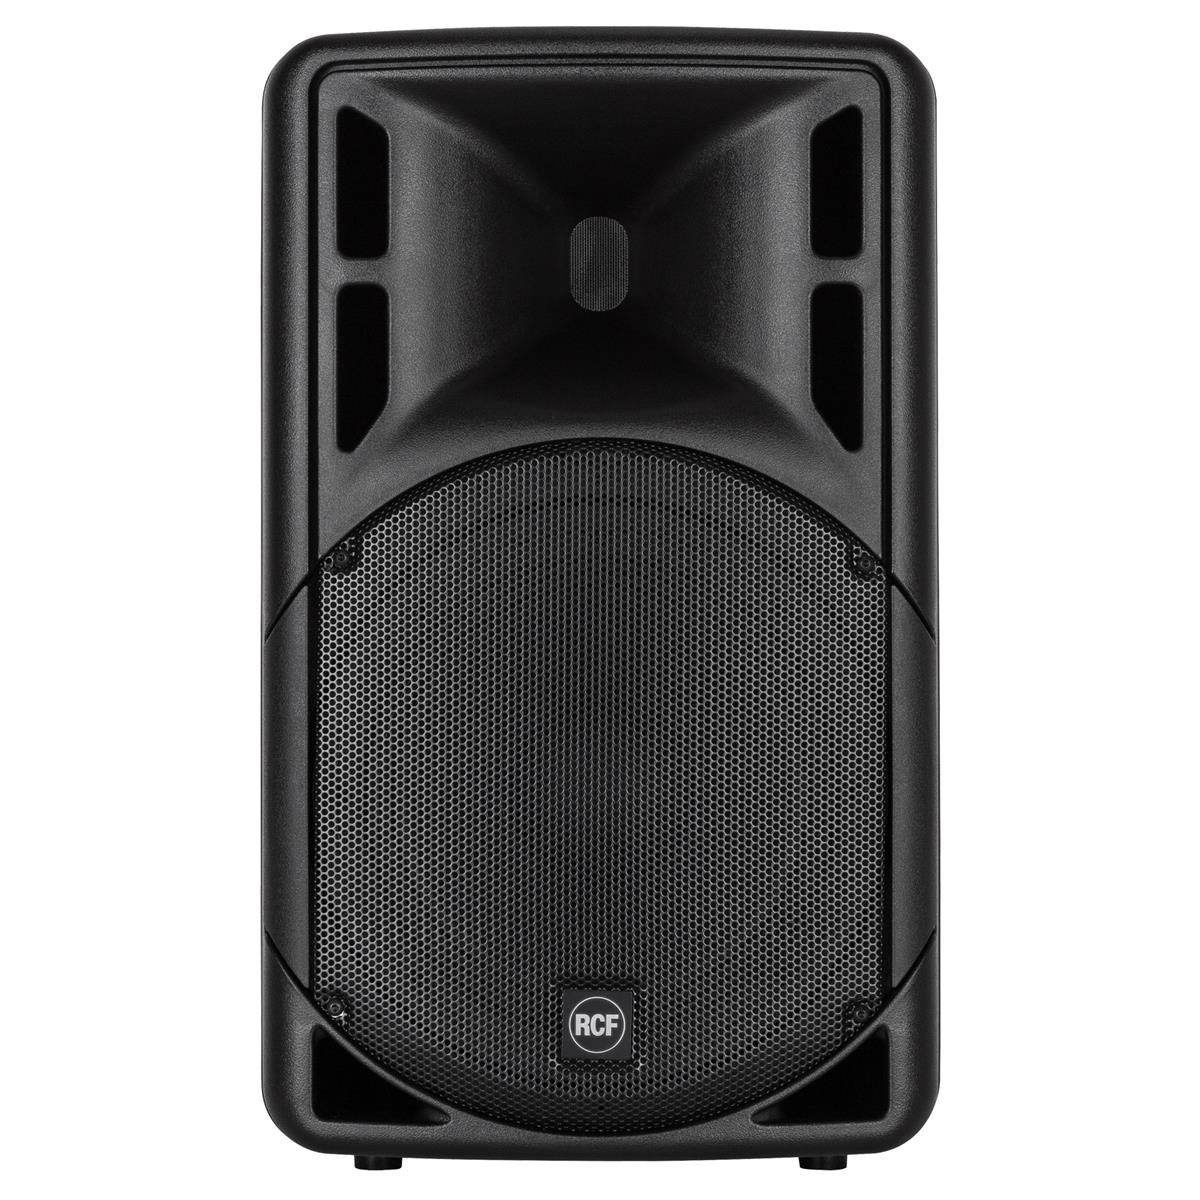 RCF Speaker system 12in + 1in, 350 W AES